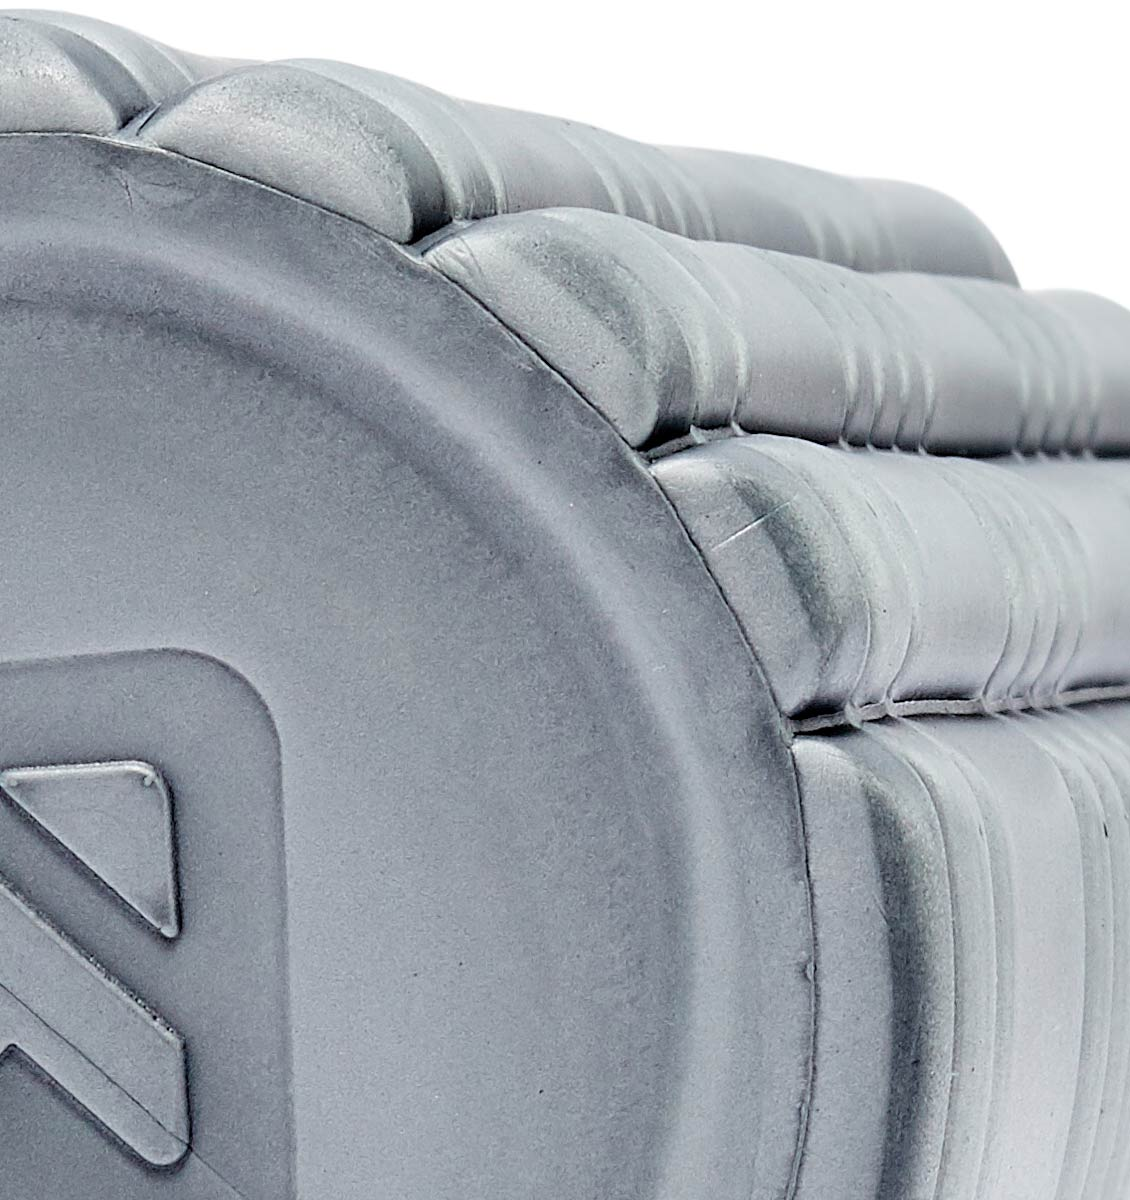 TPT3SLDCORE180 TriggerPoint Core Solid Foam Roller Grey - 60 Degree Angle - Close Up